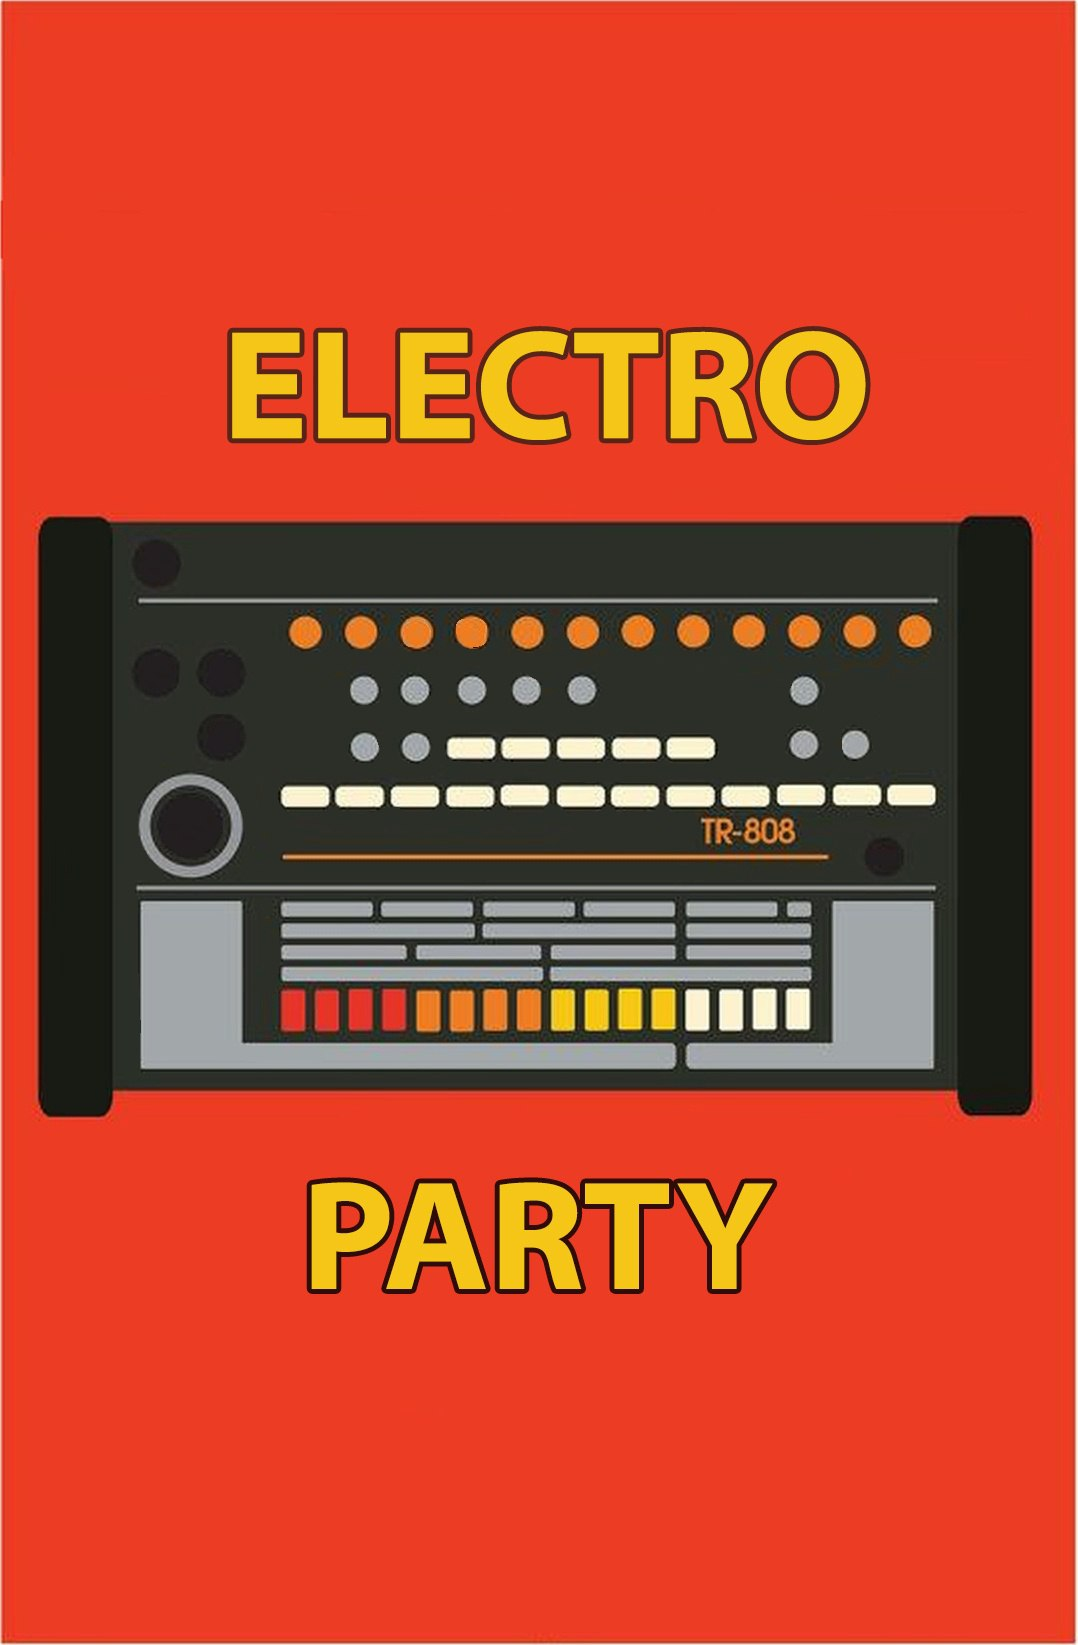 electro_party